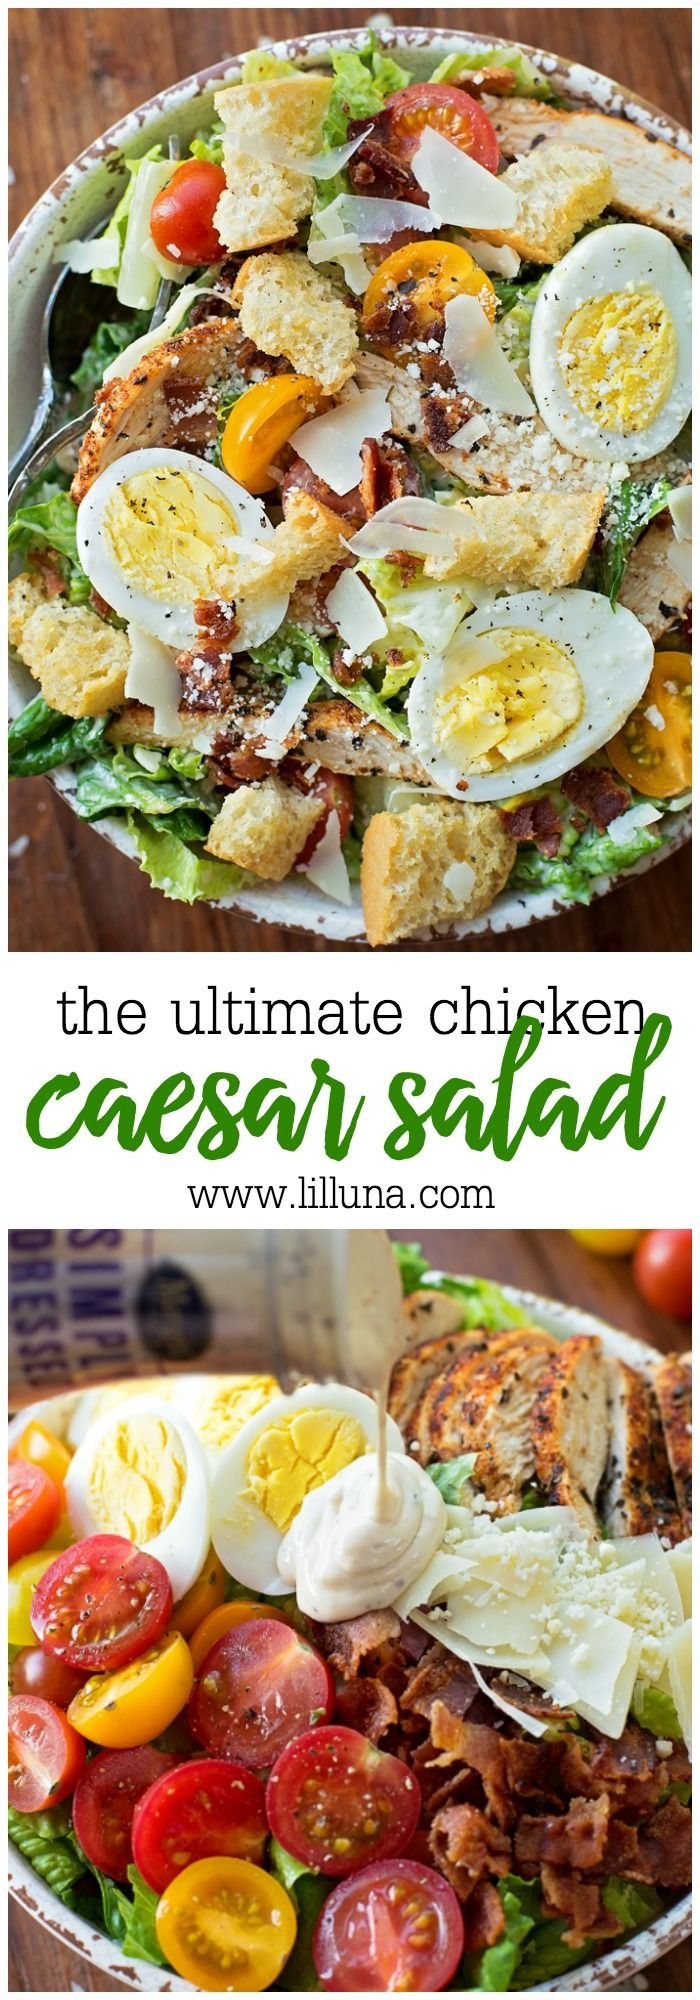 Ultimate Caesar Salad with grilled chicken, croutons, tomatoes, bacon…